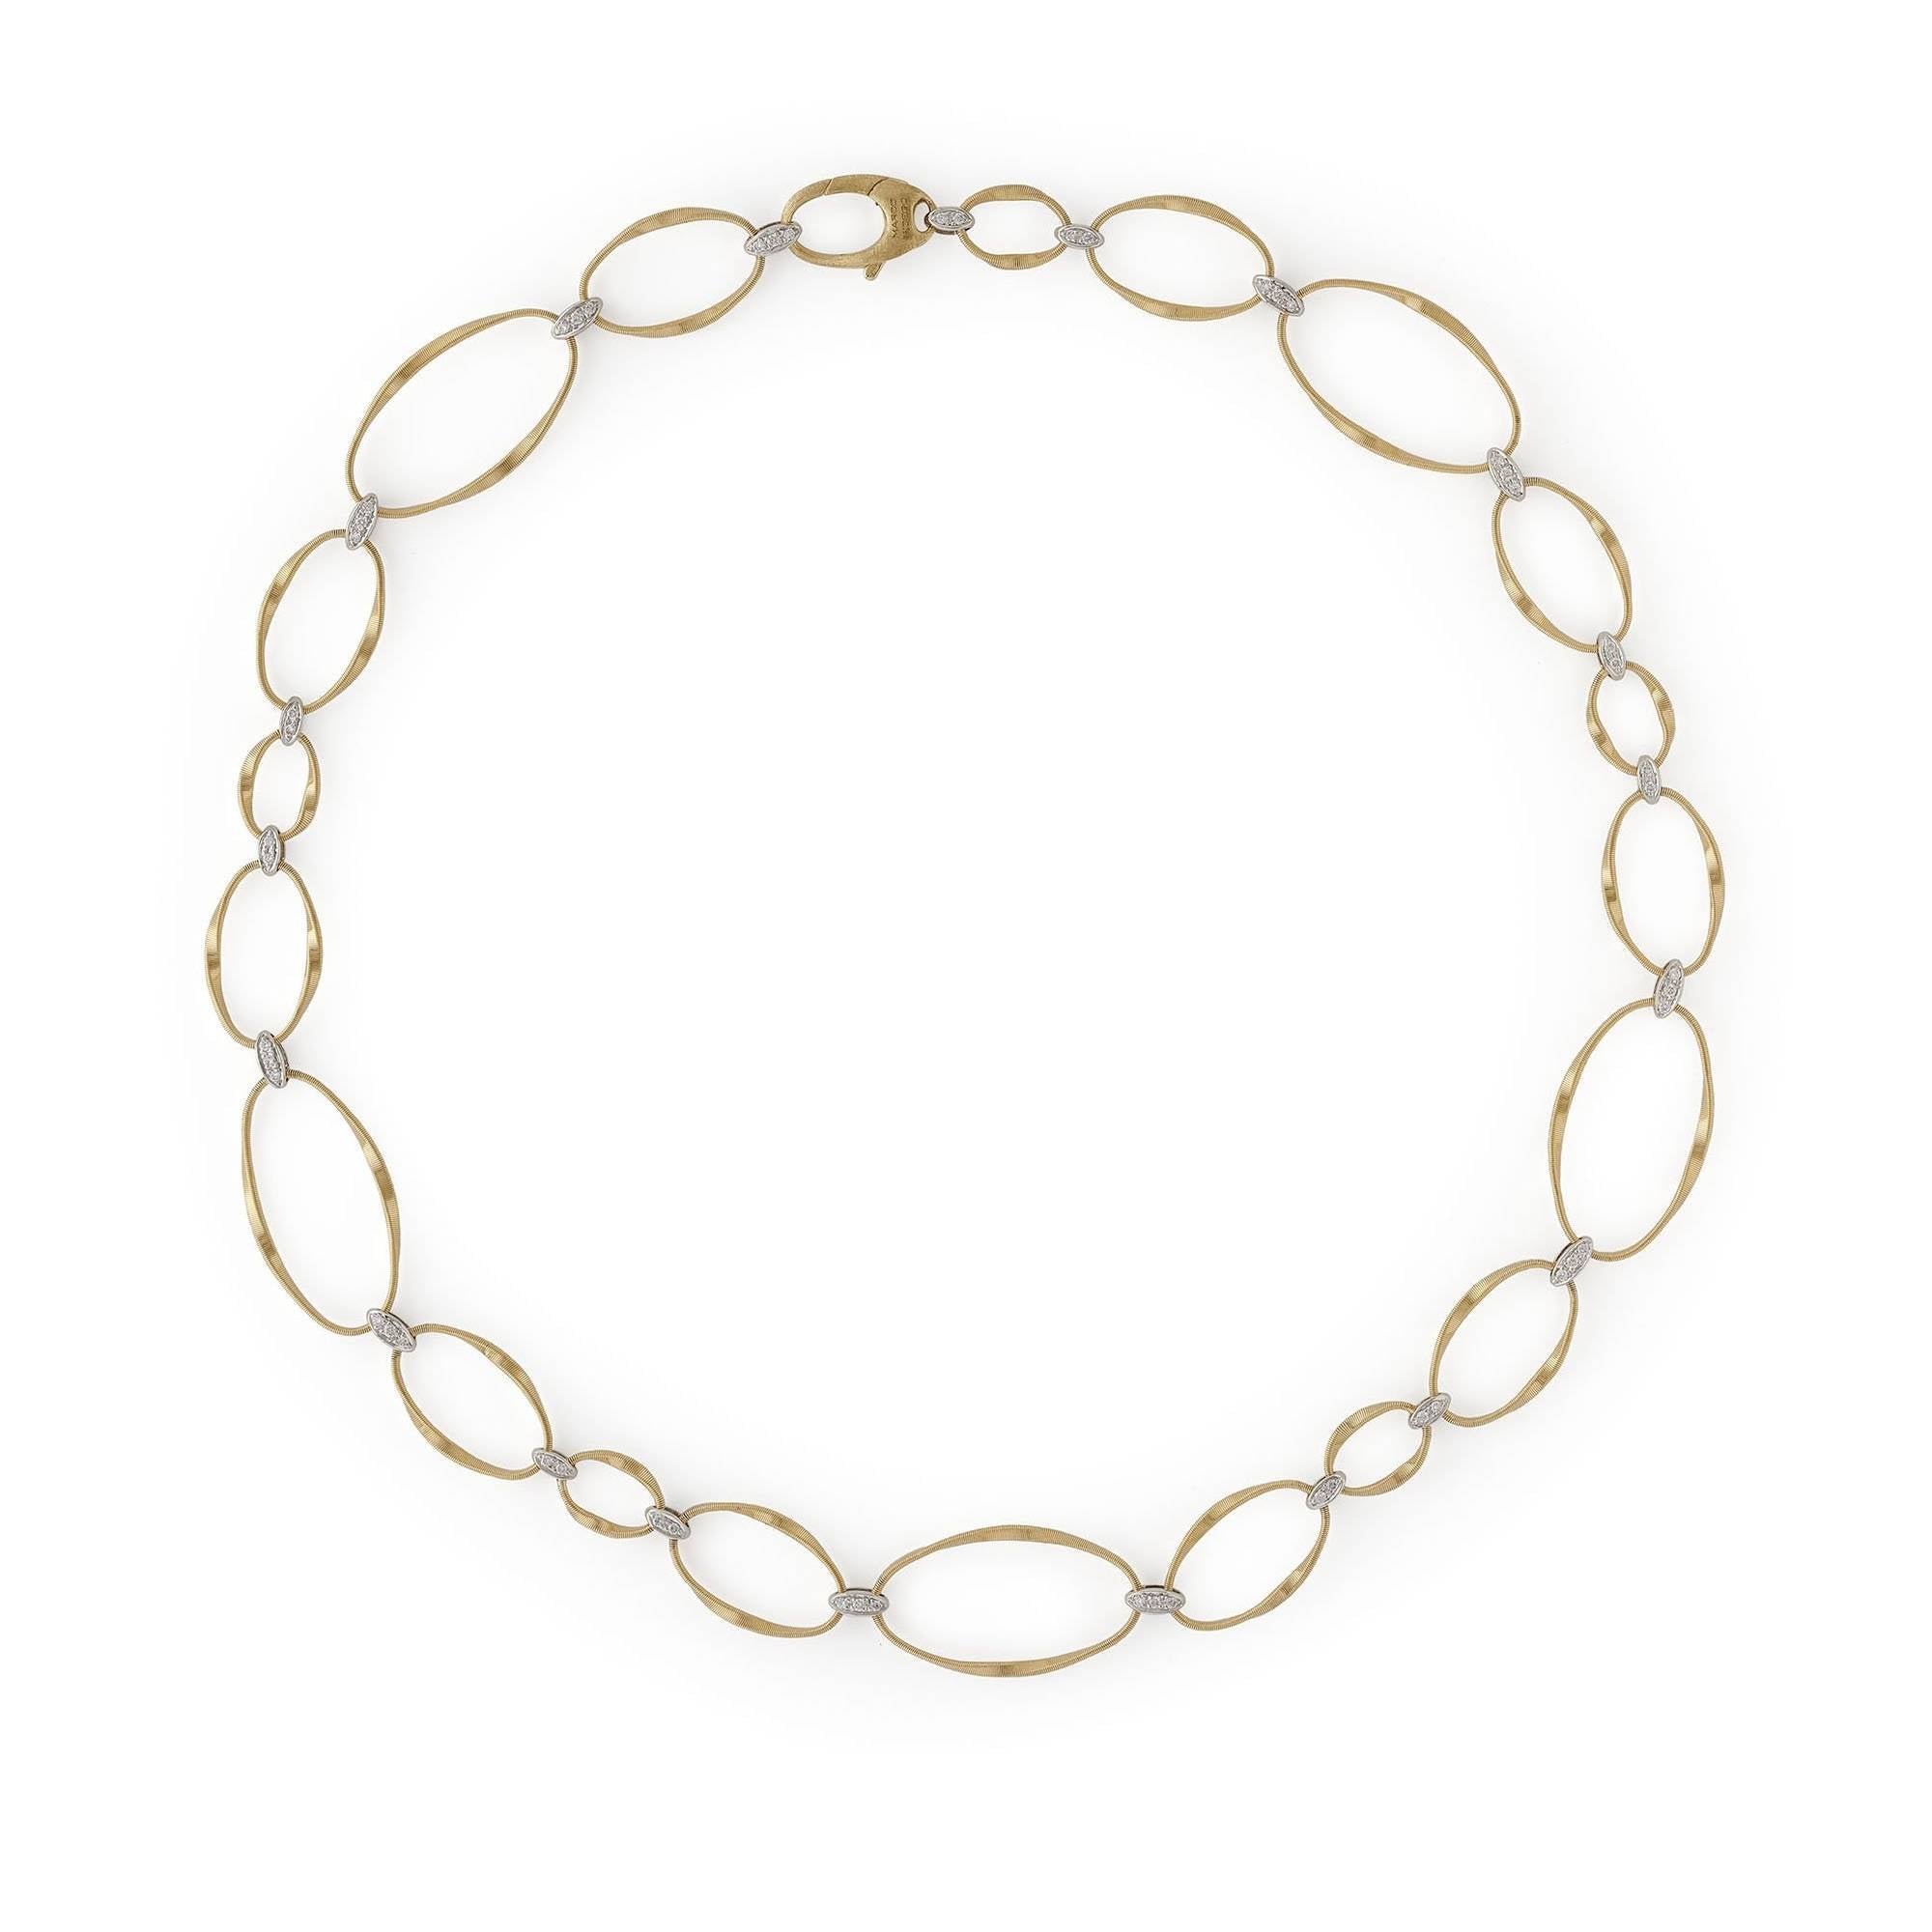 Lucia 18ct yellow gold bracelet by Marco Bicego